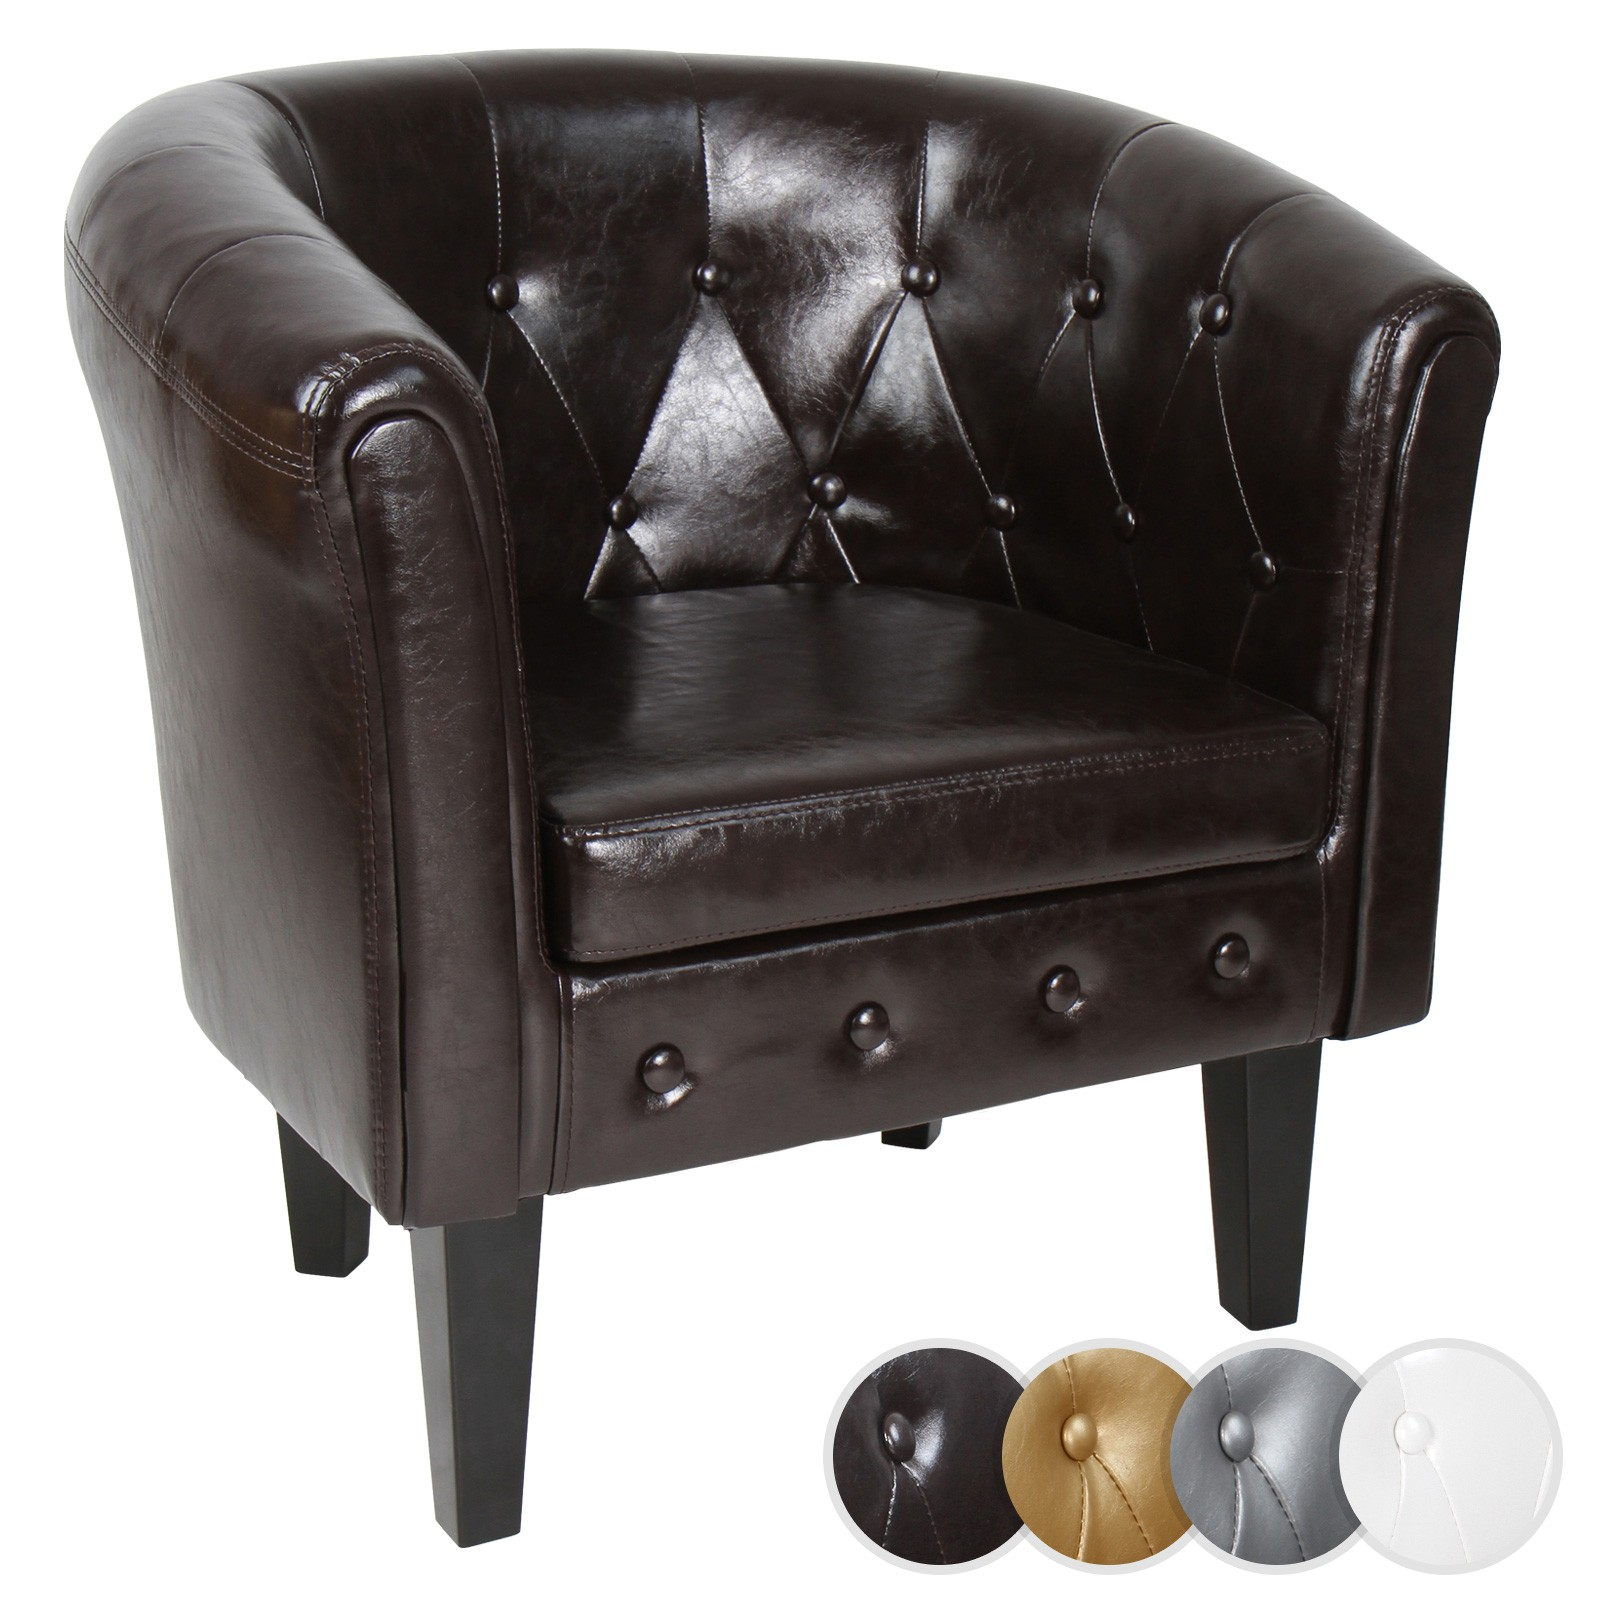 Chesterfield Sessel Details Zu Chesterfield Sessel Cocktail Clubsessel Stuhl Sofa Kunstleder Möbel Garnitur